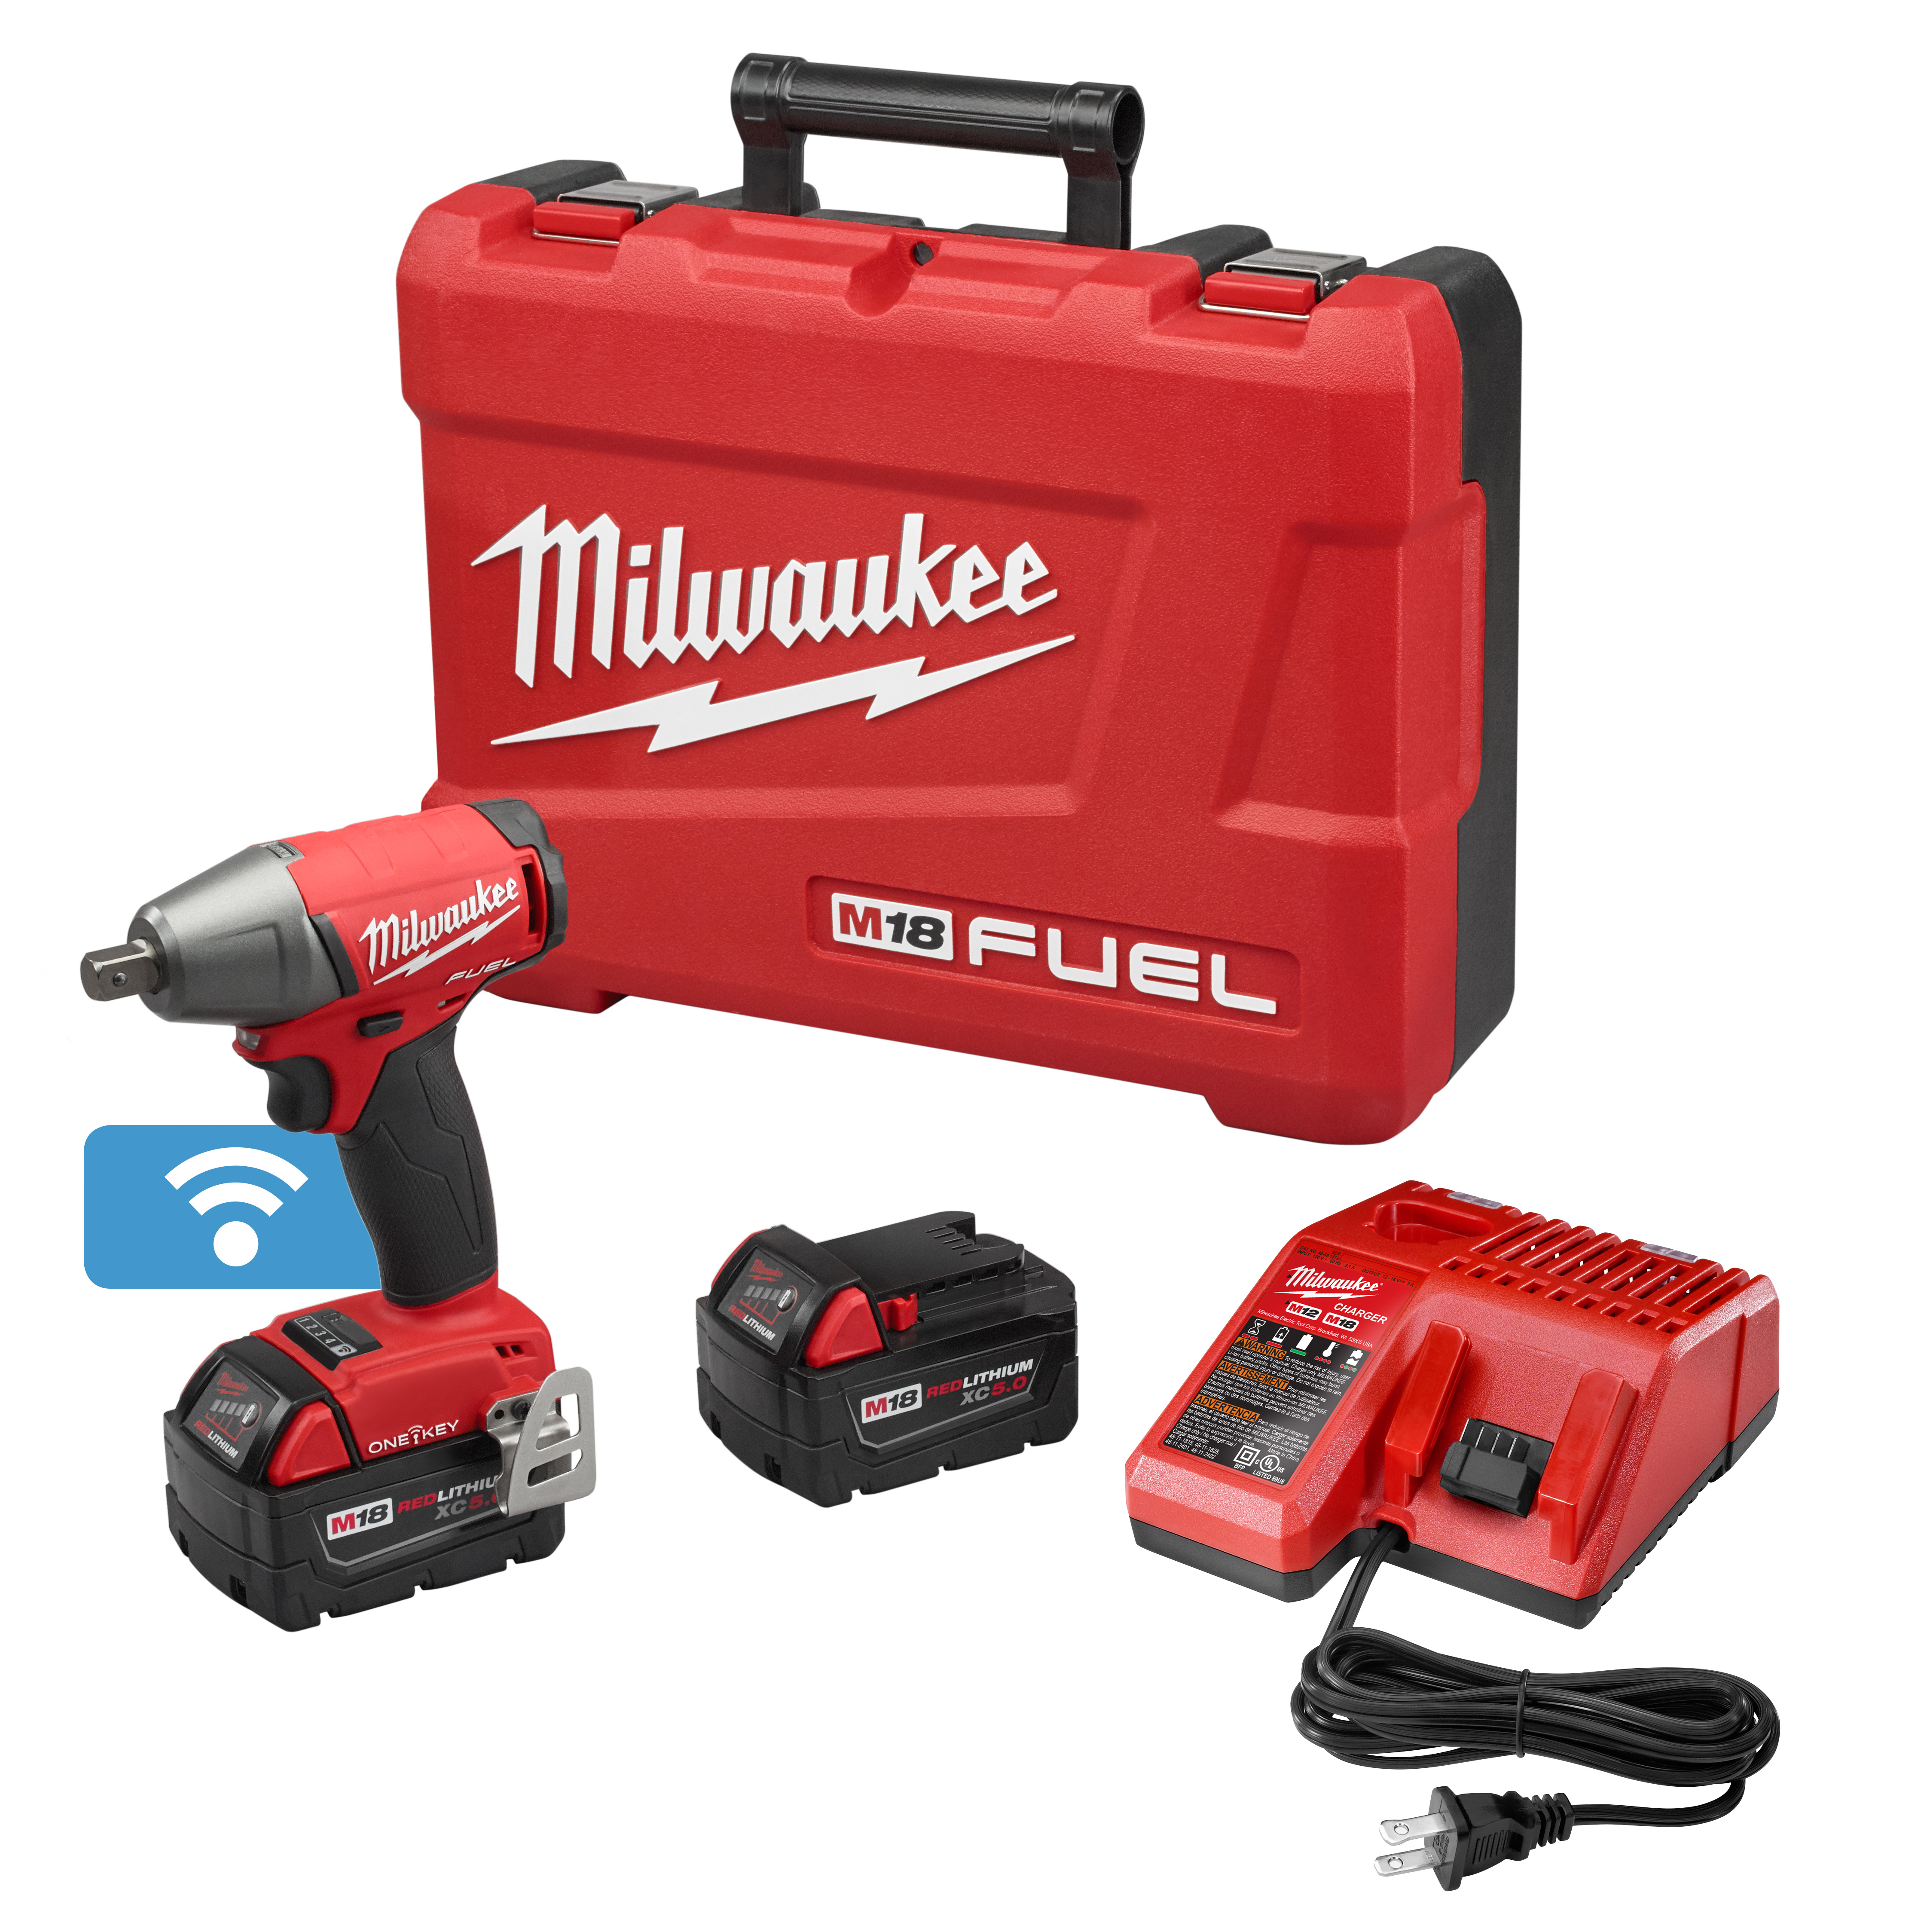 Milwaukee® M18™ FUEL™ 2759-22 Brushless Compact Compact Impact Wrench Kit With Pin Detent, 1/2 in Straight Drive, 0 to 3200 bpm, 220 ft-lb Torque, 18 VDC, 6.1 in OAL